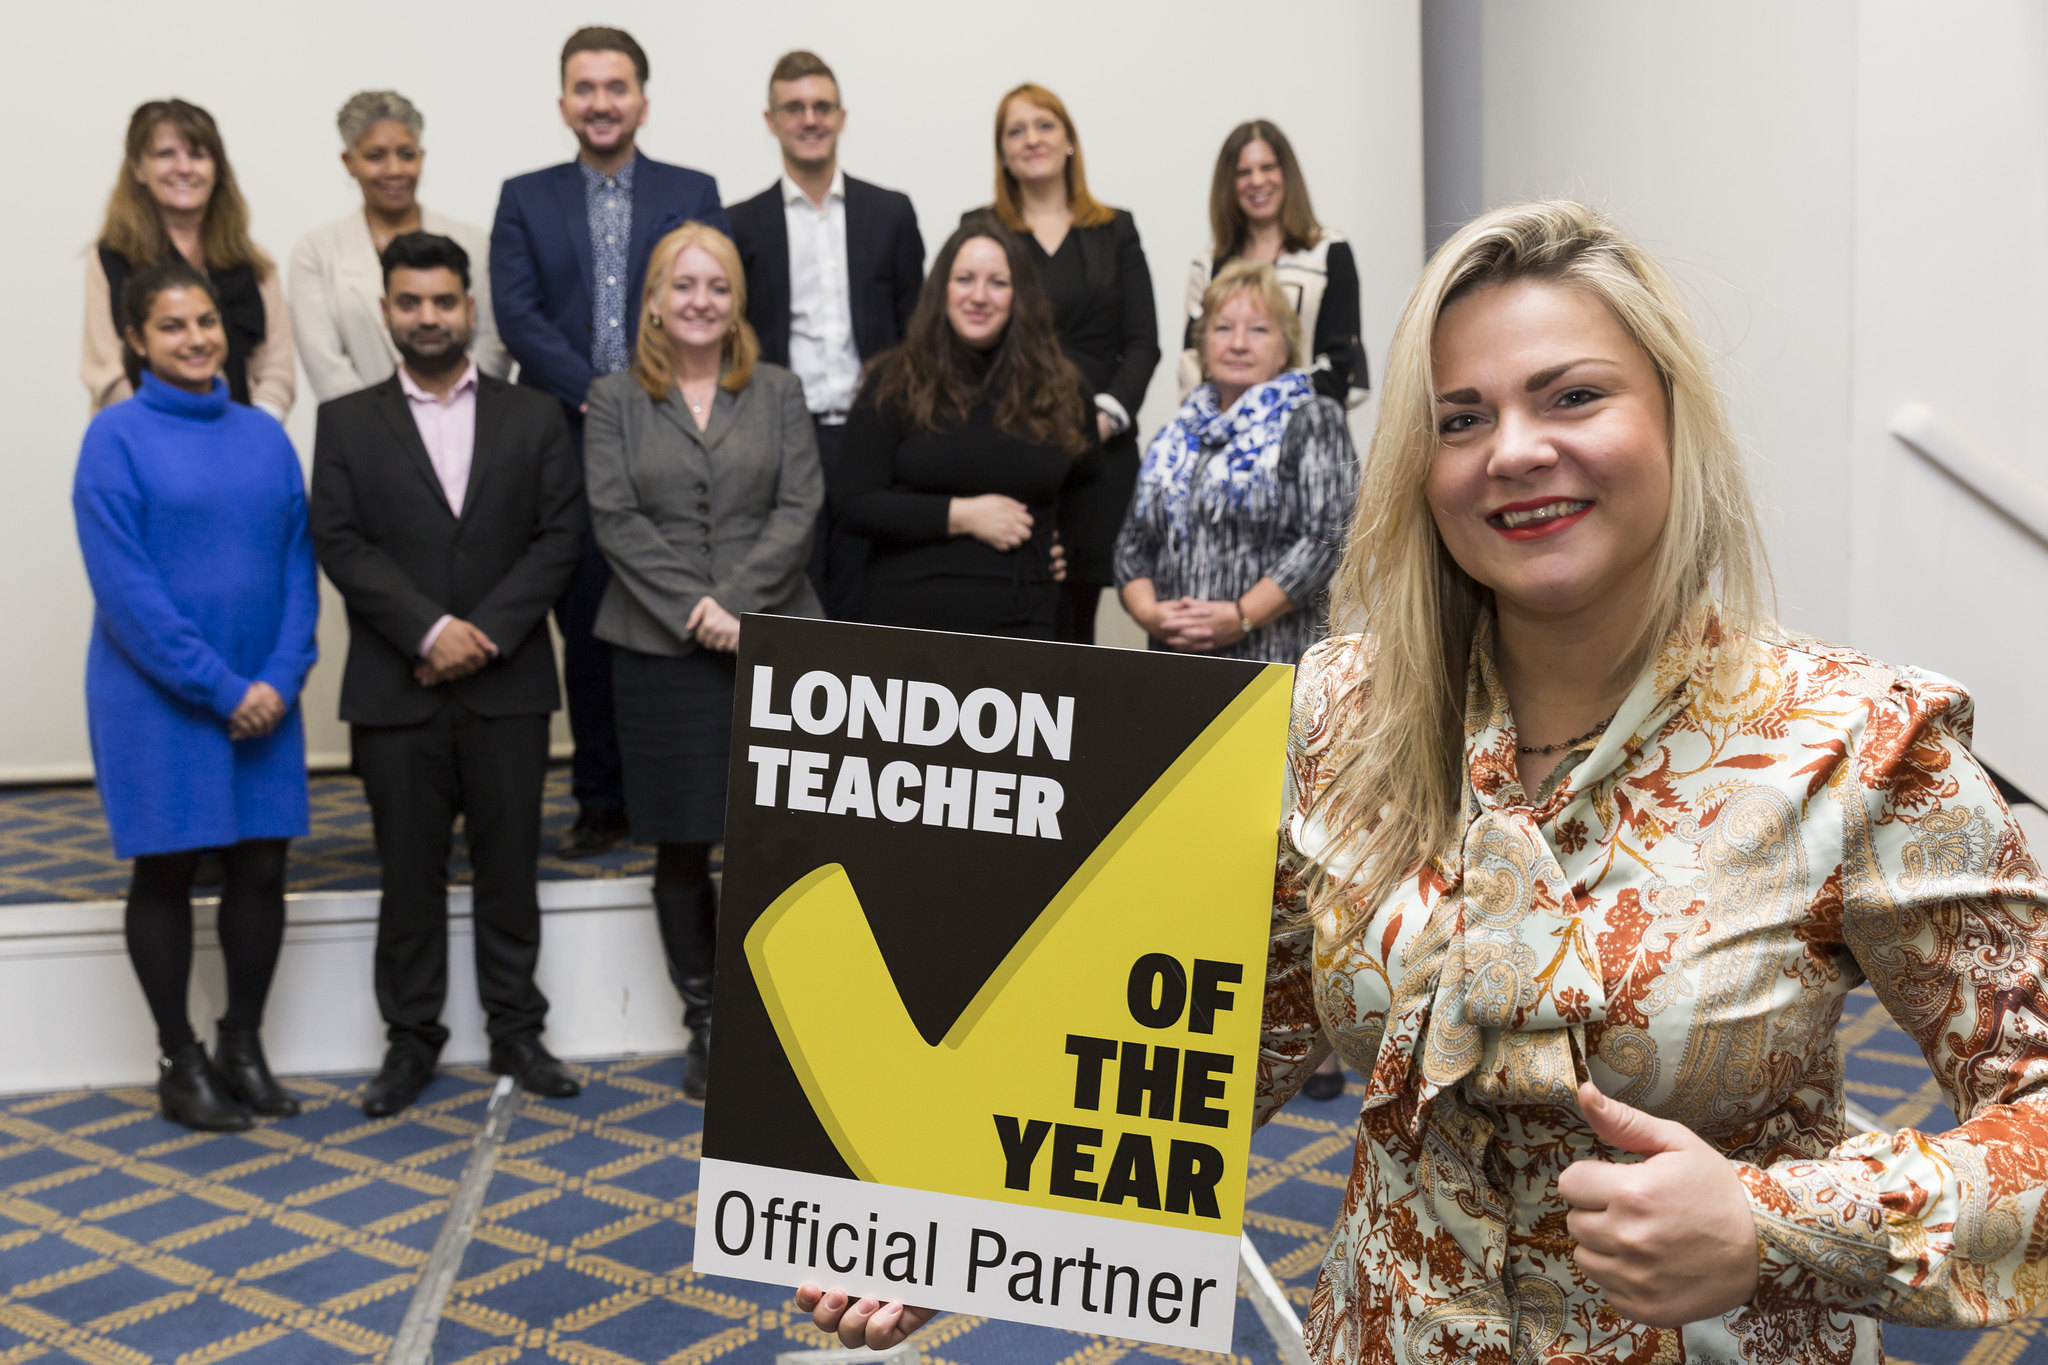 London Teacher of the Year Awards 2019 launch event